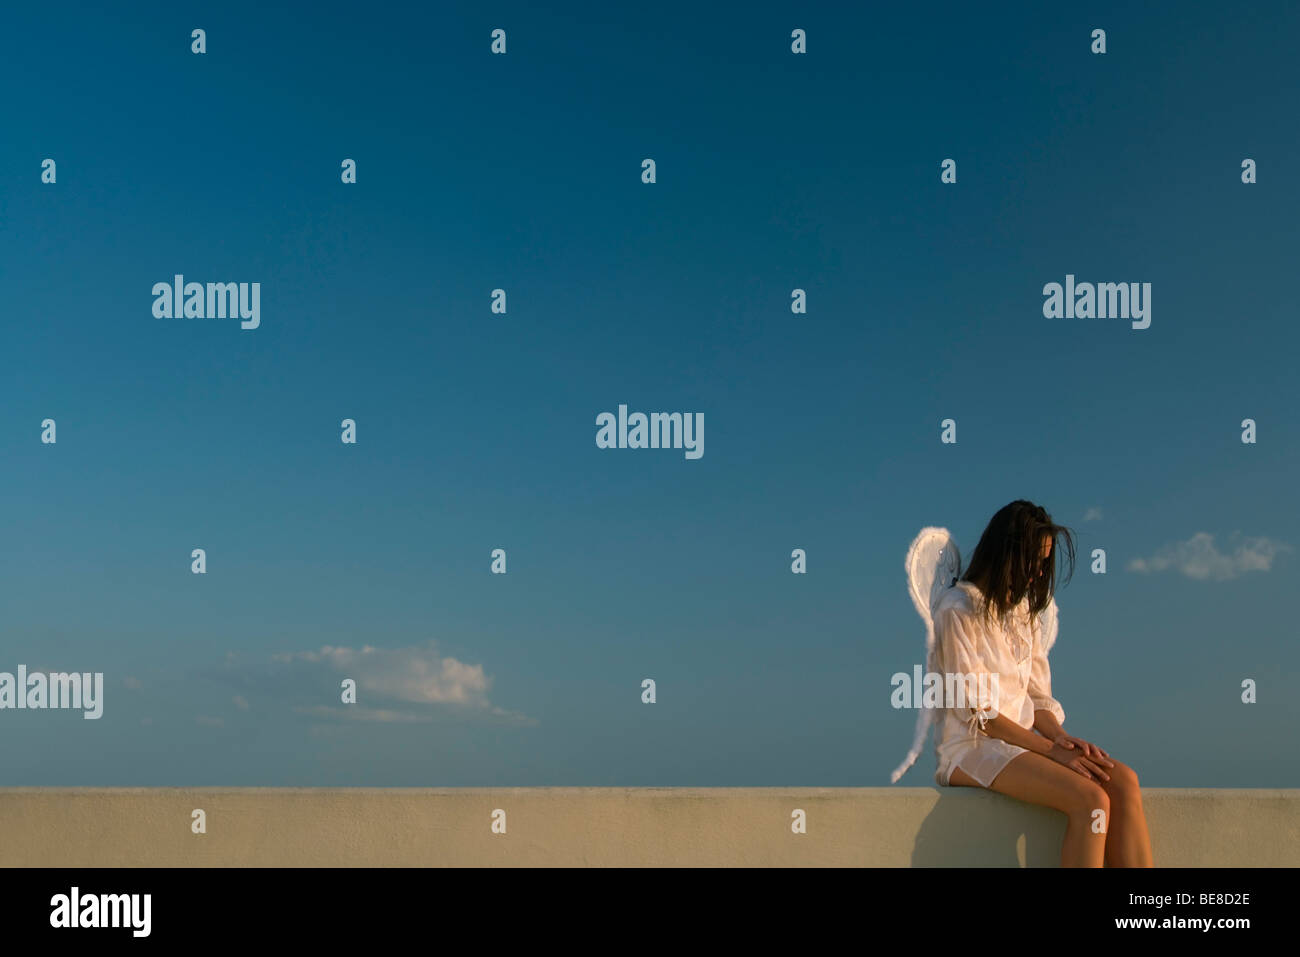 Woman wearing angel wings sitting on ledge, head down, hair obscuring face - Stock Image